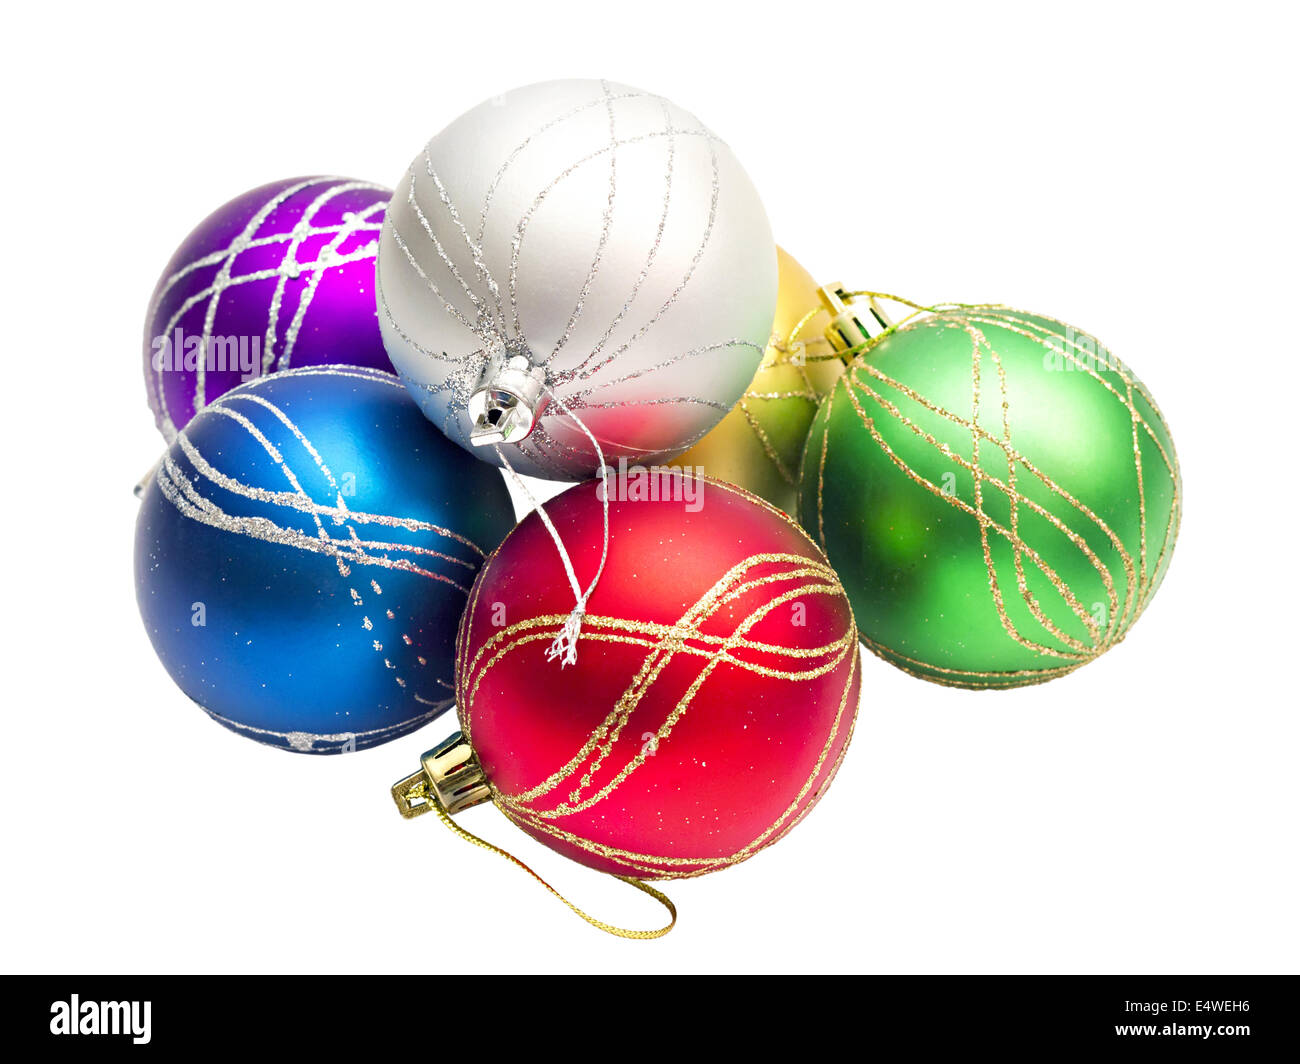 multi-colored Christmas balls - Stock Image